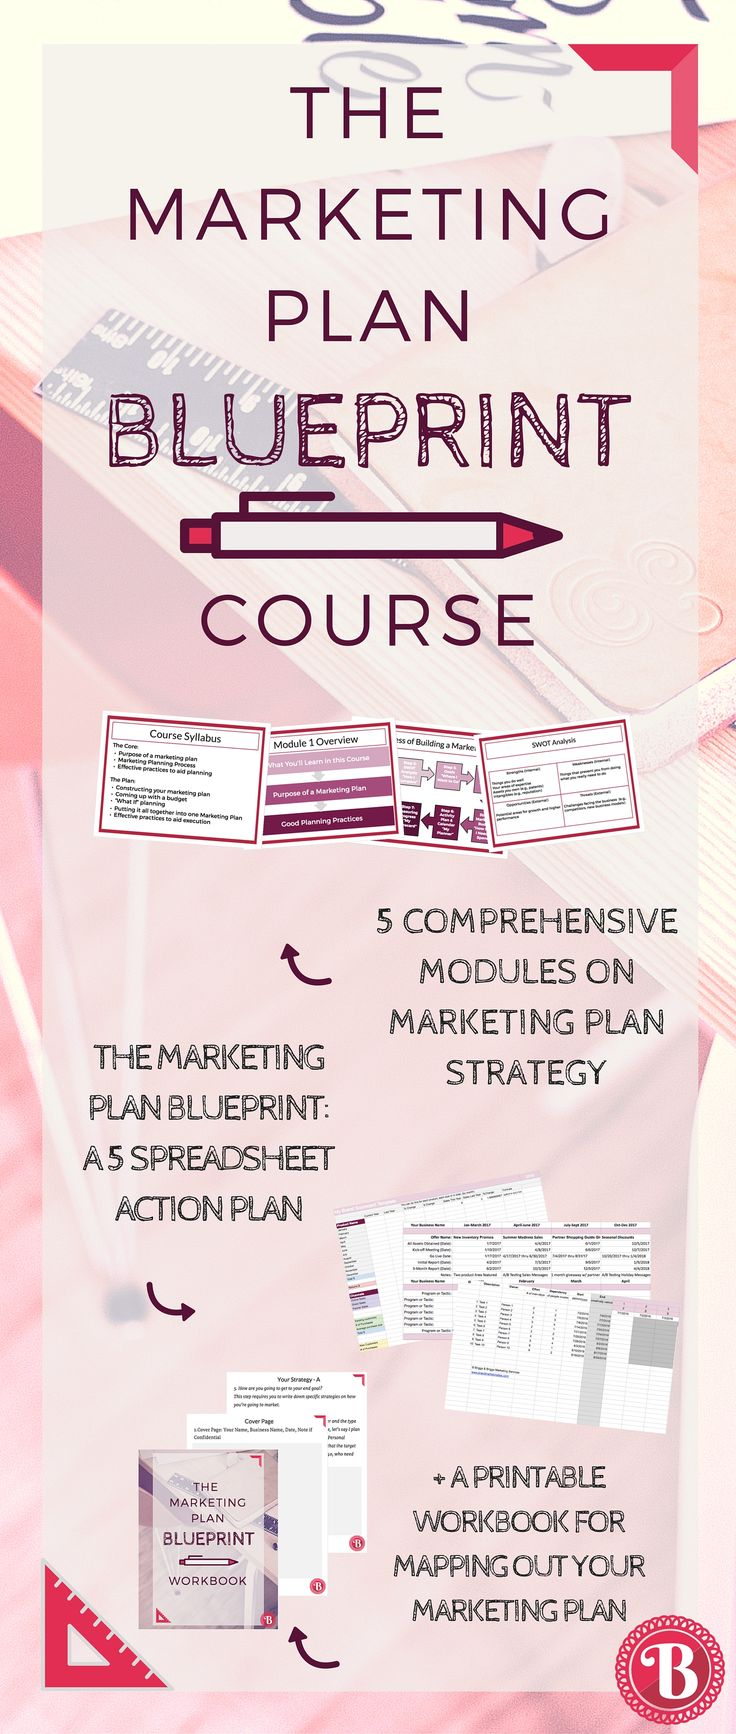 """Introducing The Marketing Plan Blueprint course! MODULE 1 IS FREE!  You will walk away from this course with:  A complete marketing plan to move your business forward.  A flexible mindset and a """"clouds and dirt"""" philosophy towards scaling your business up.  The skills to replicate this plan for all of your future businesses.  A strong sense of purpose and clear vision about your mission and action planning systems."""